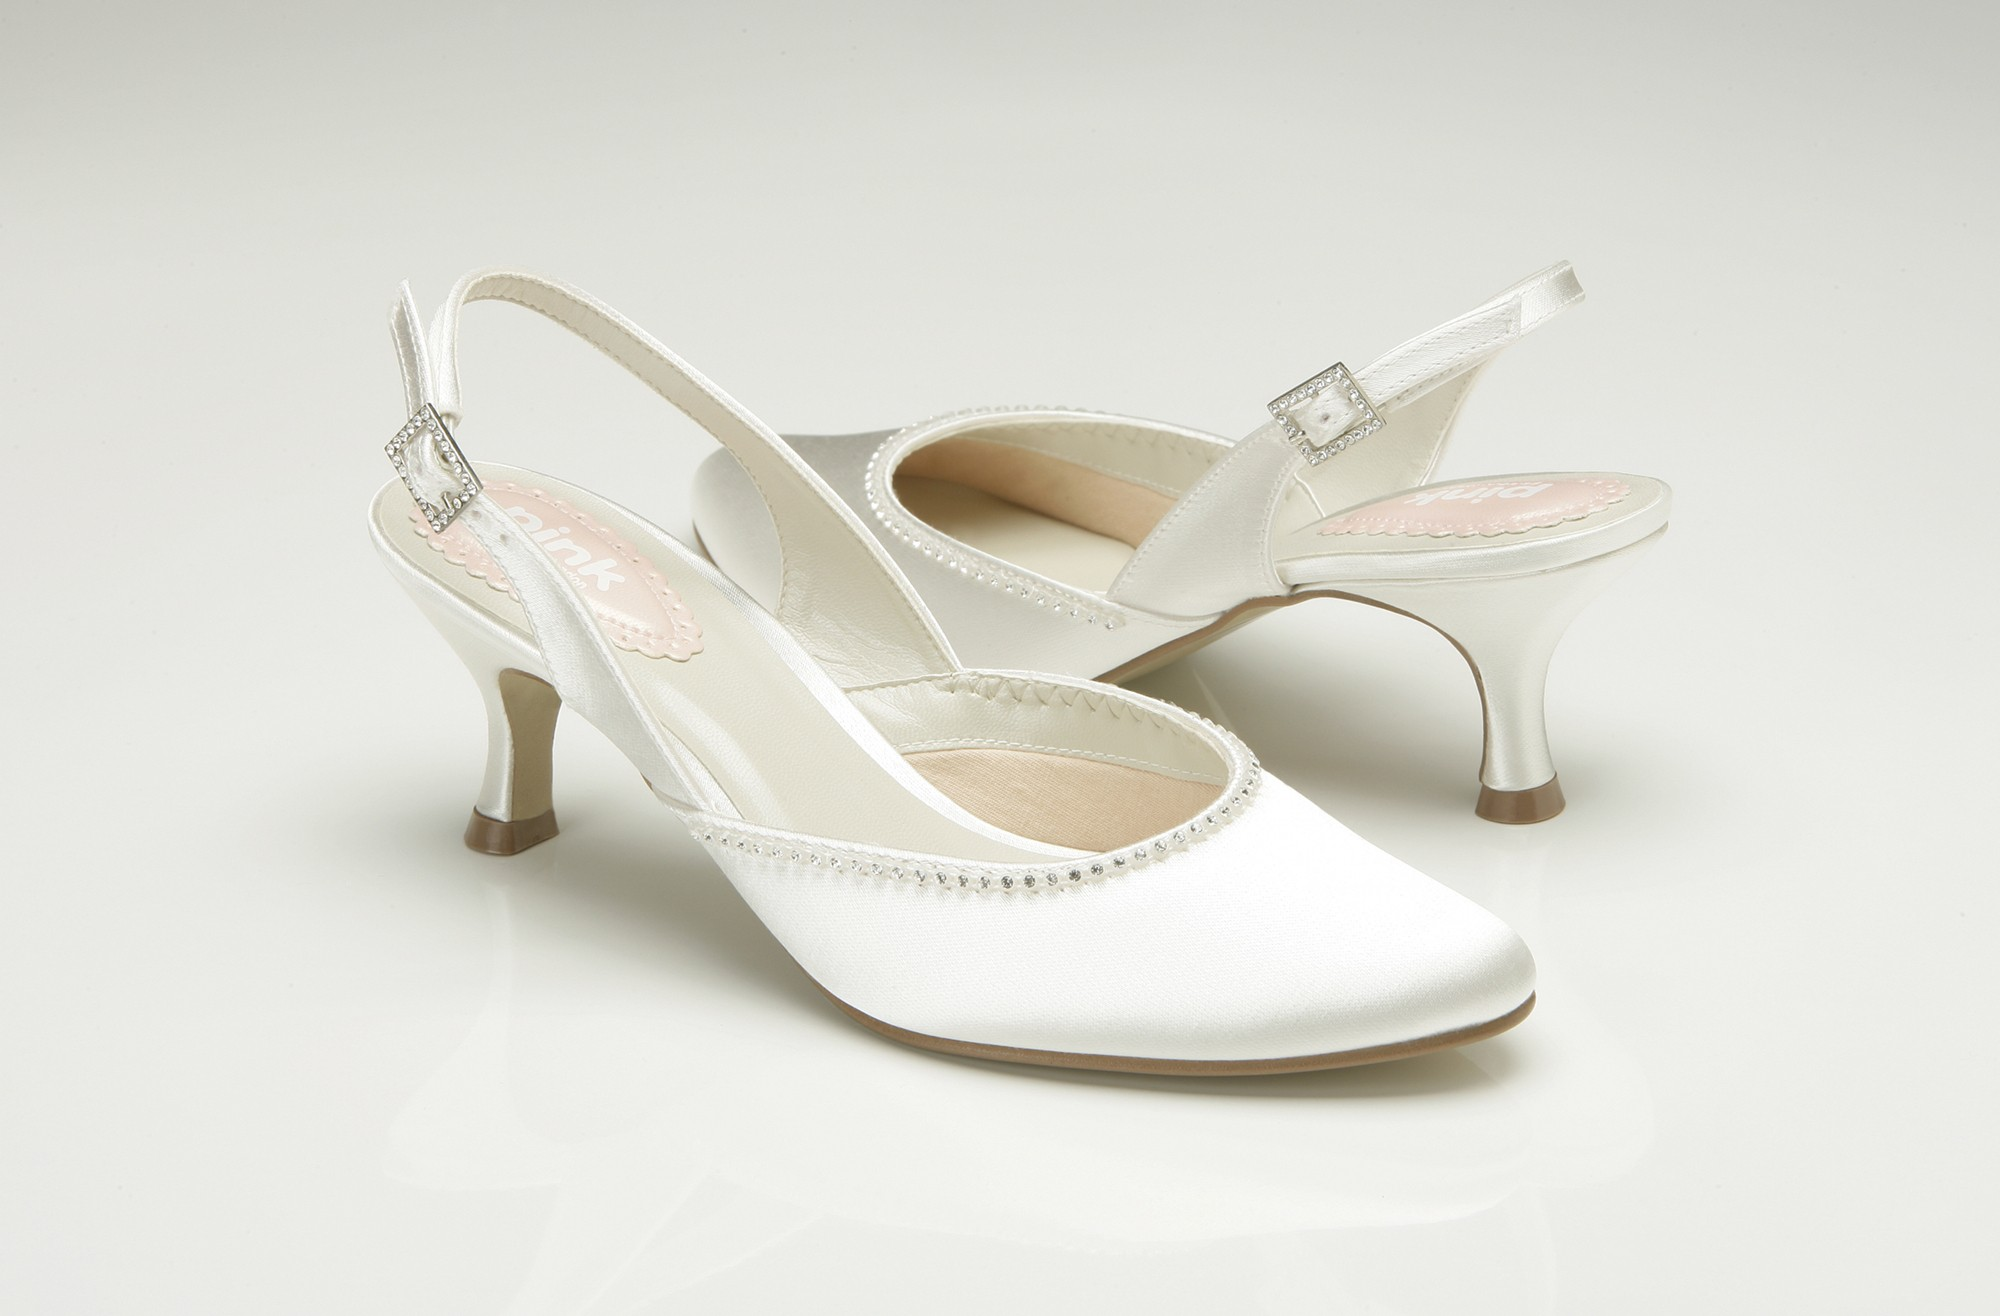 789fbd681 High heel bridal shoes - Florida-Photo-Magazine.com